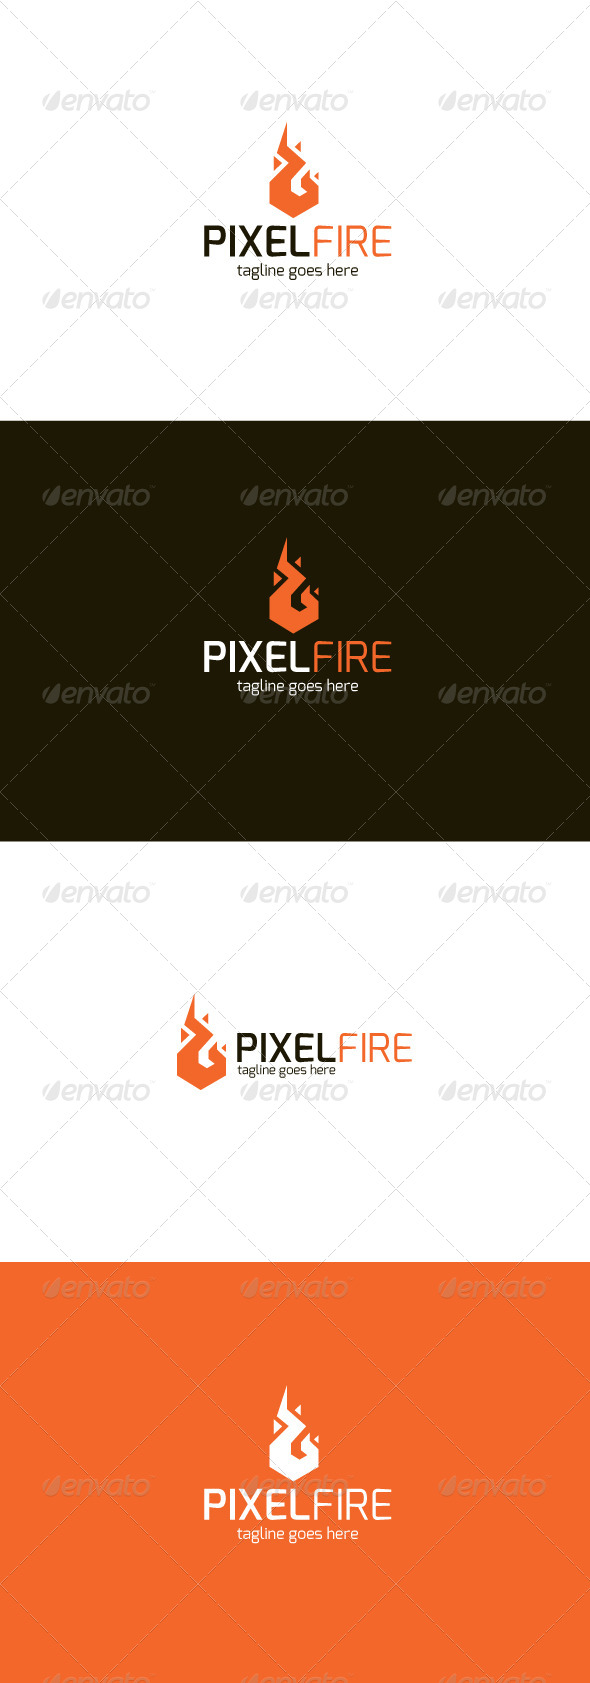 GraphicRiver Pixel Fire Logo 8241412